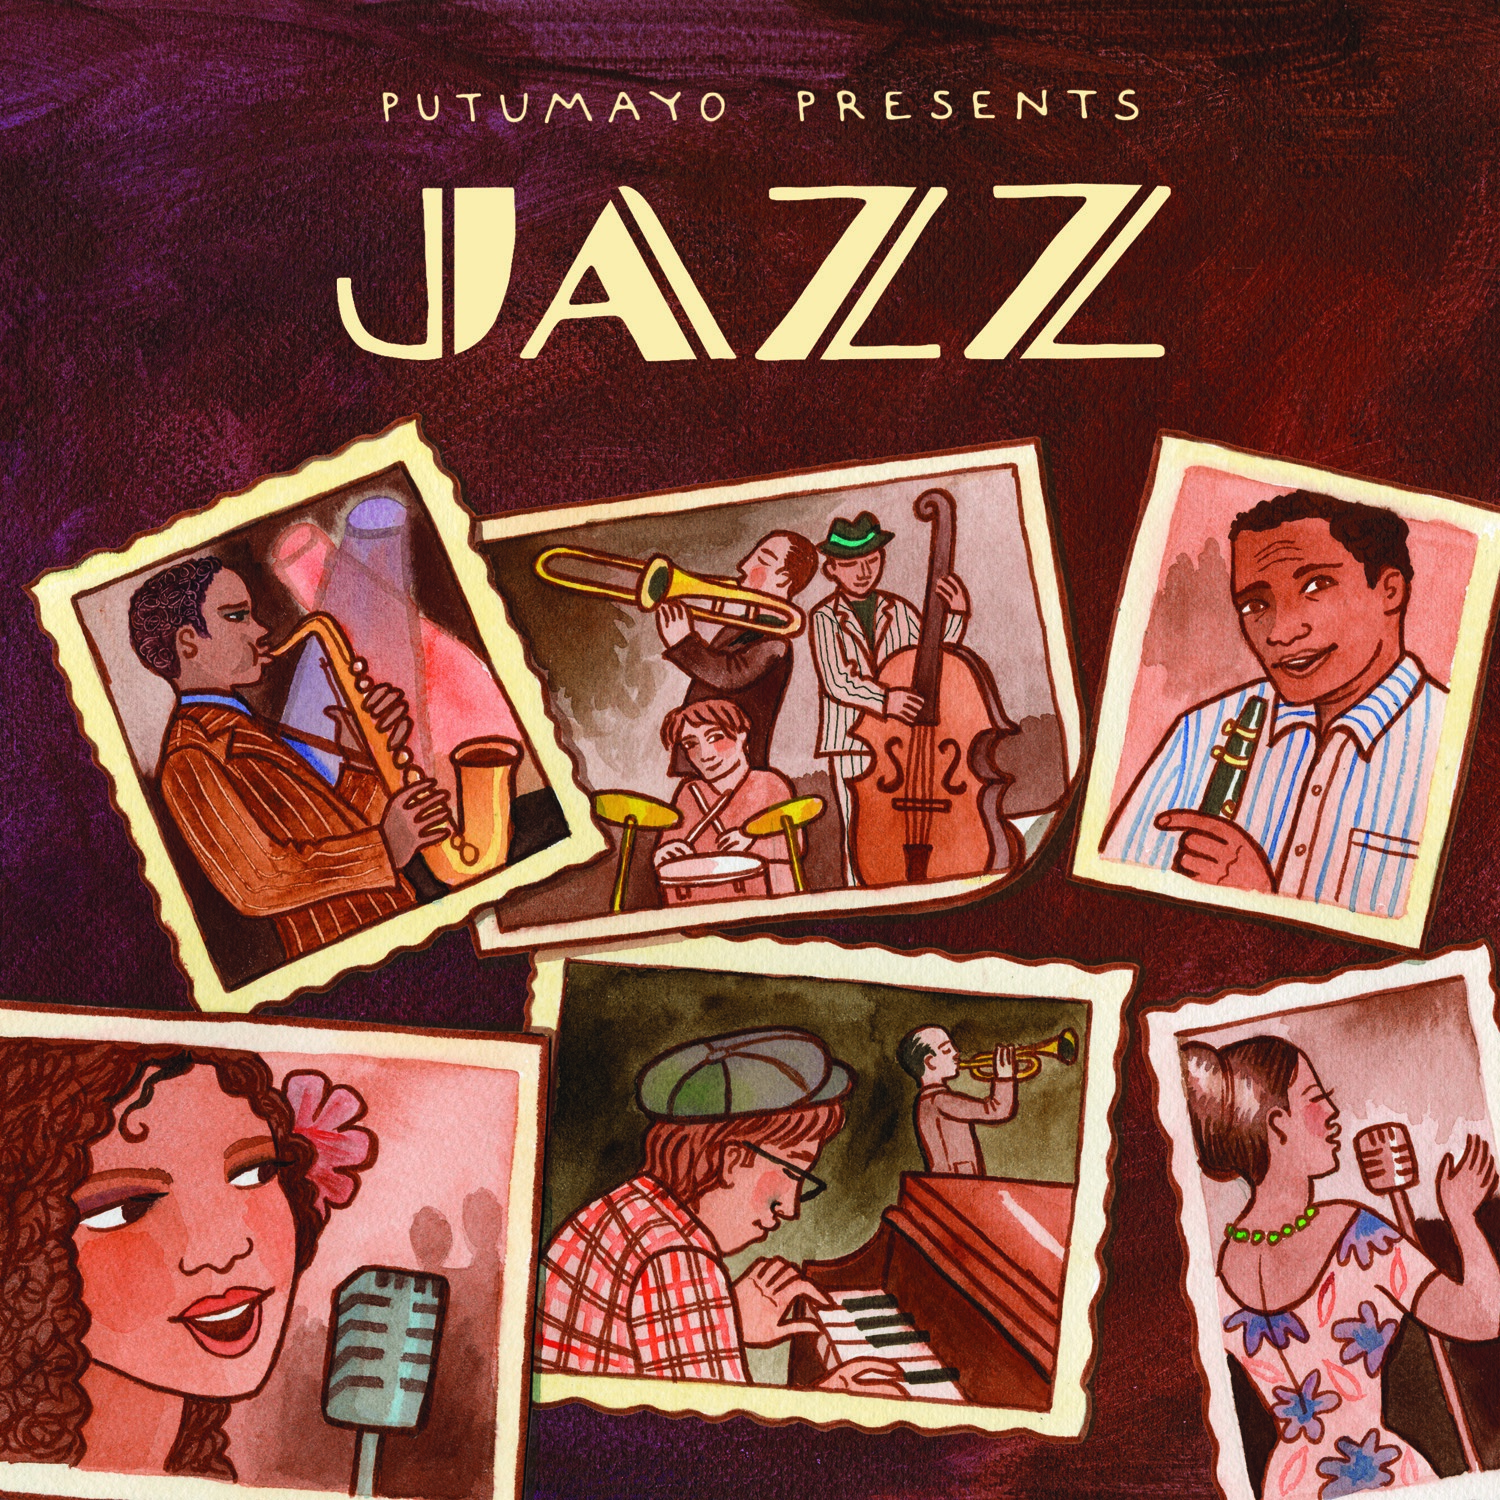 Viewtopic also Travelin On Exclusively For My Friends Vol 6 Mw0000697567 also Lotd92 also Putumayo Presents   Jazz  282011 29 also D08Yeste. on oscar peterson album another day